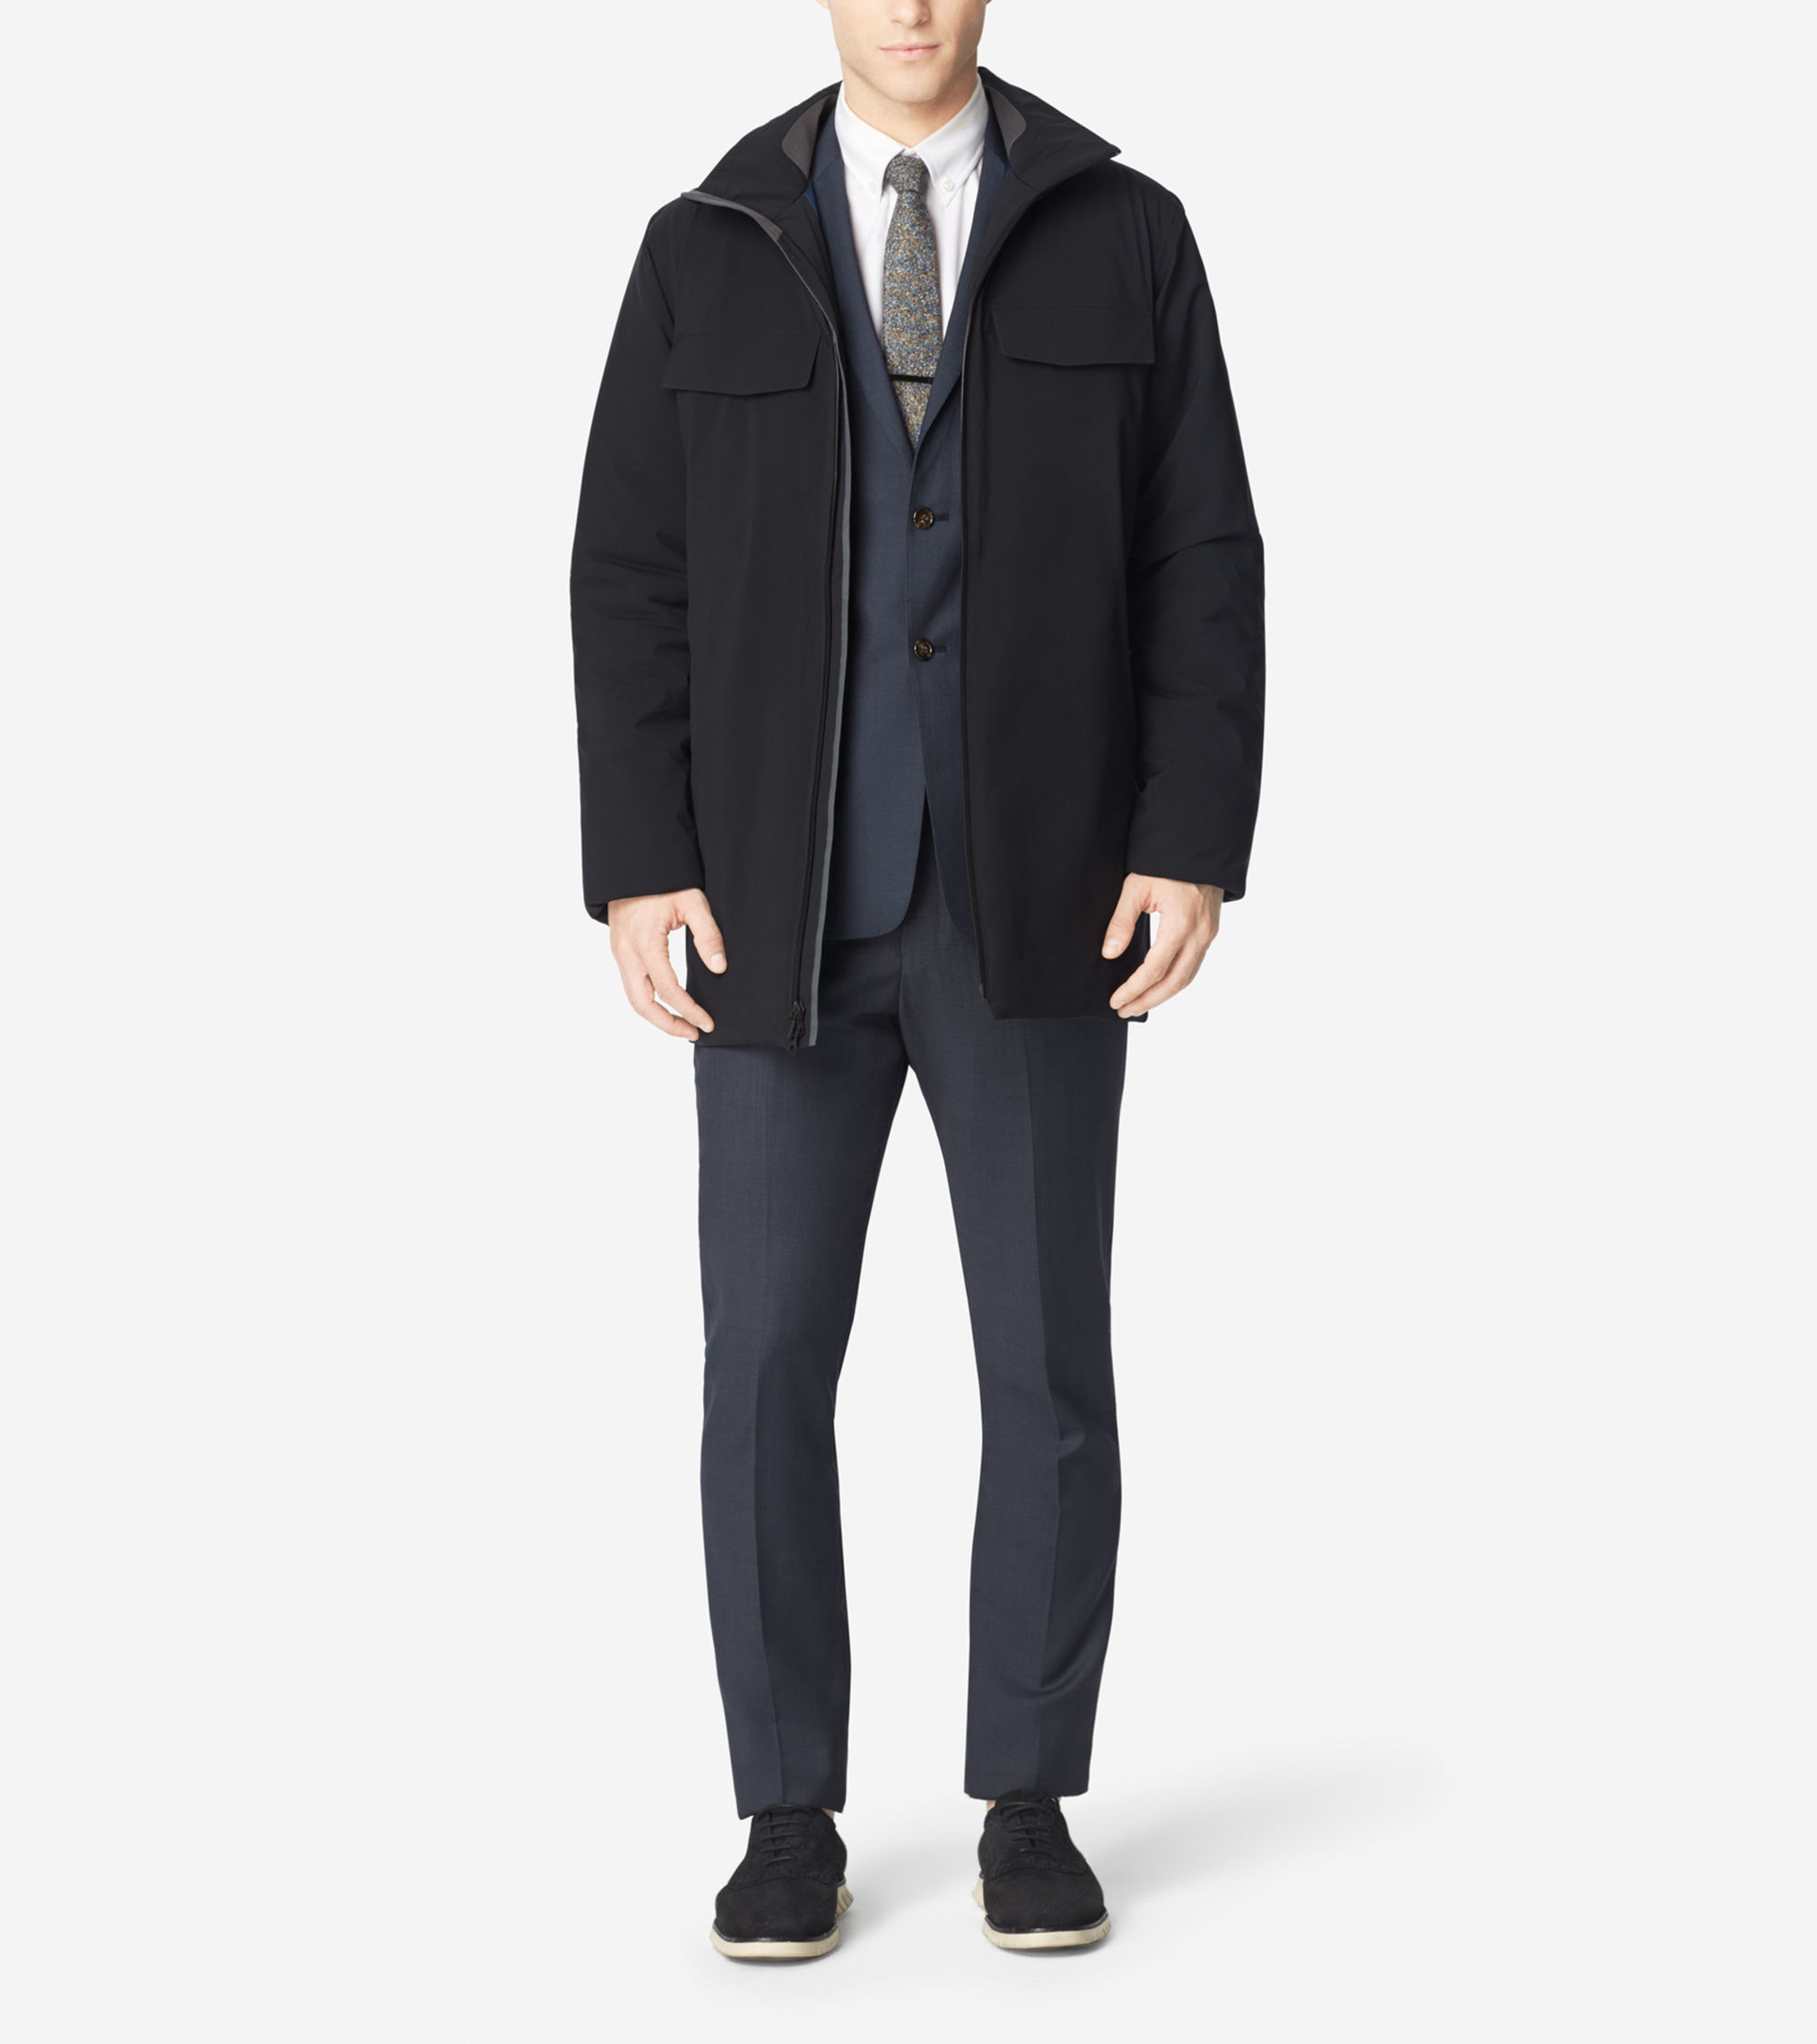 Cole haan Zerøgrand Motoring Coat in Black for Men